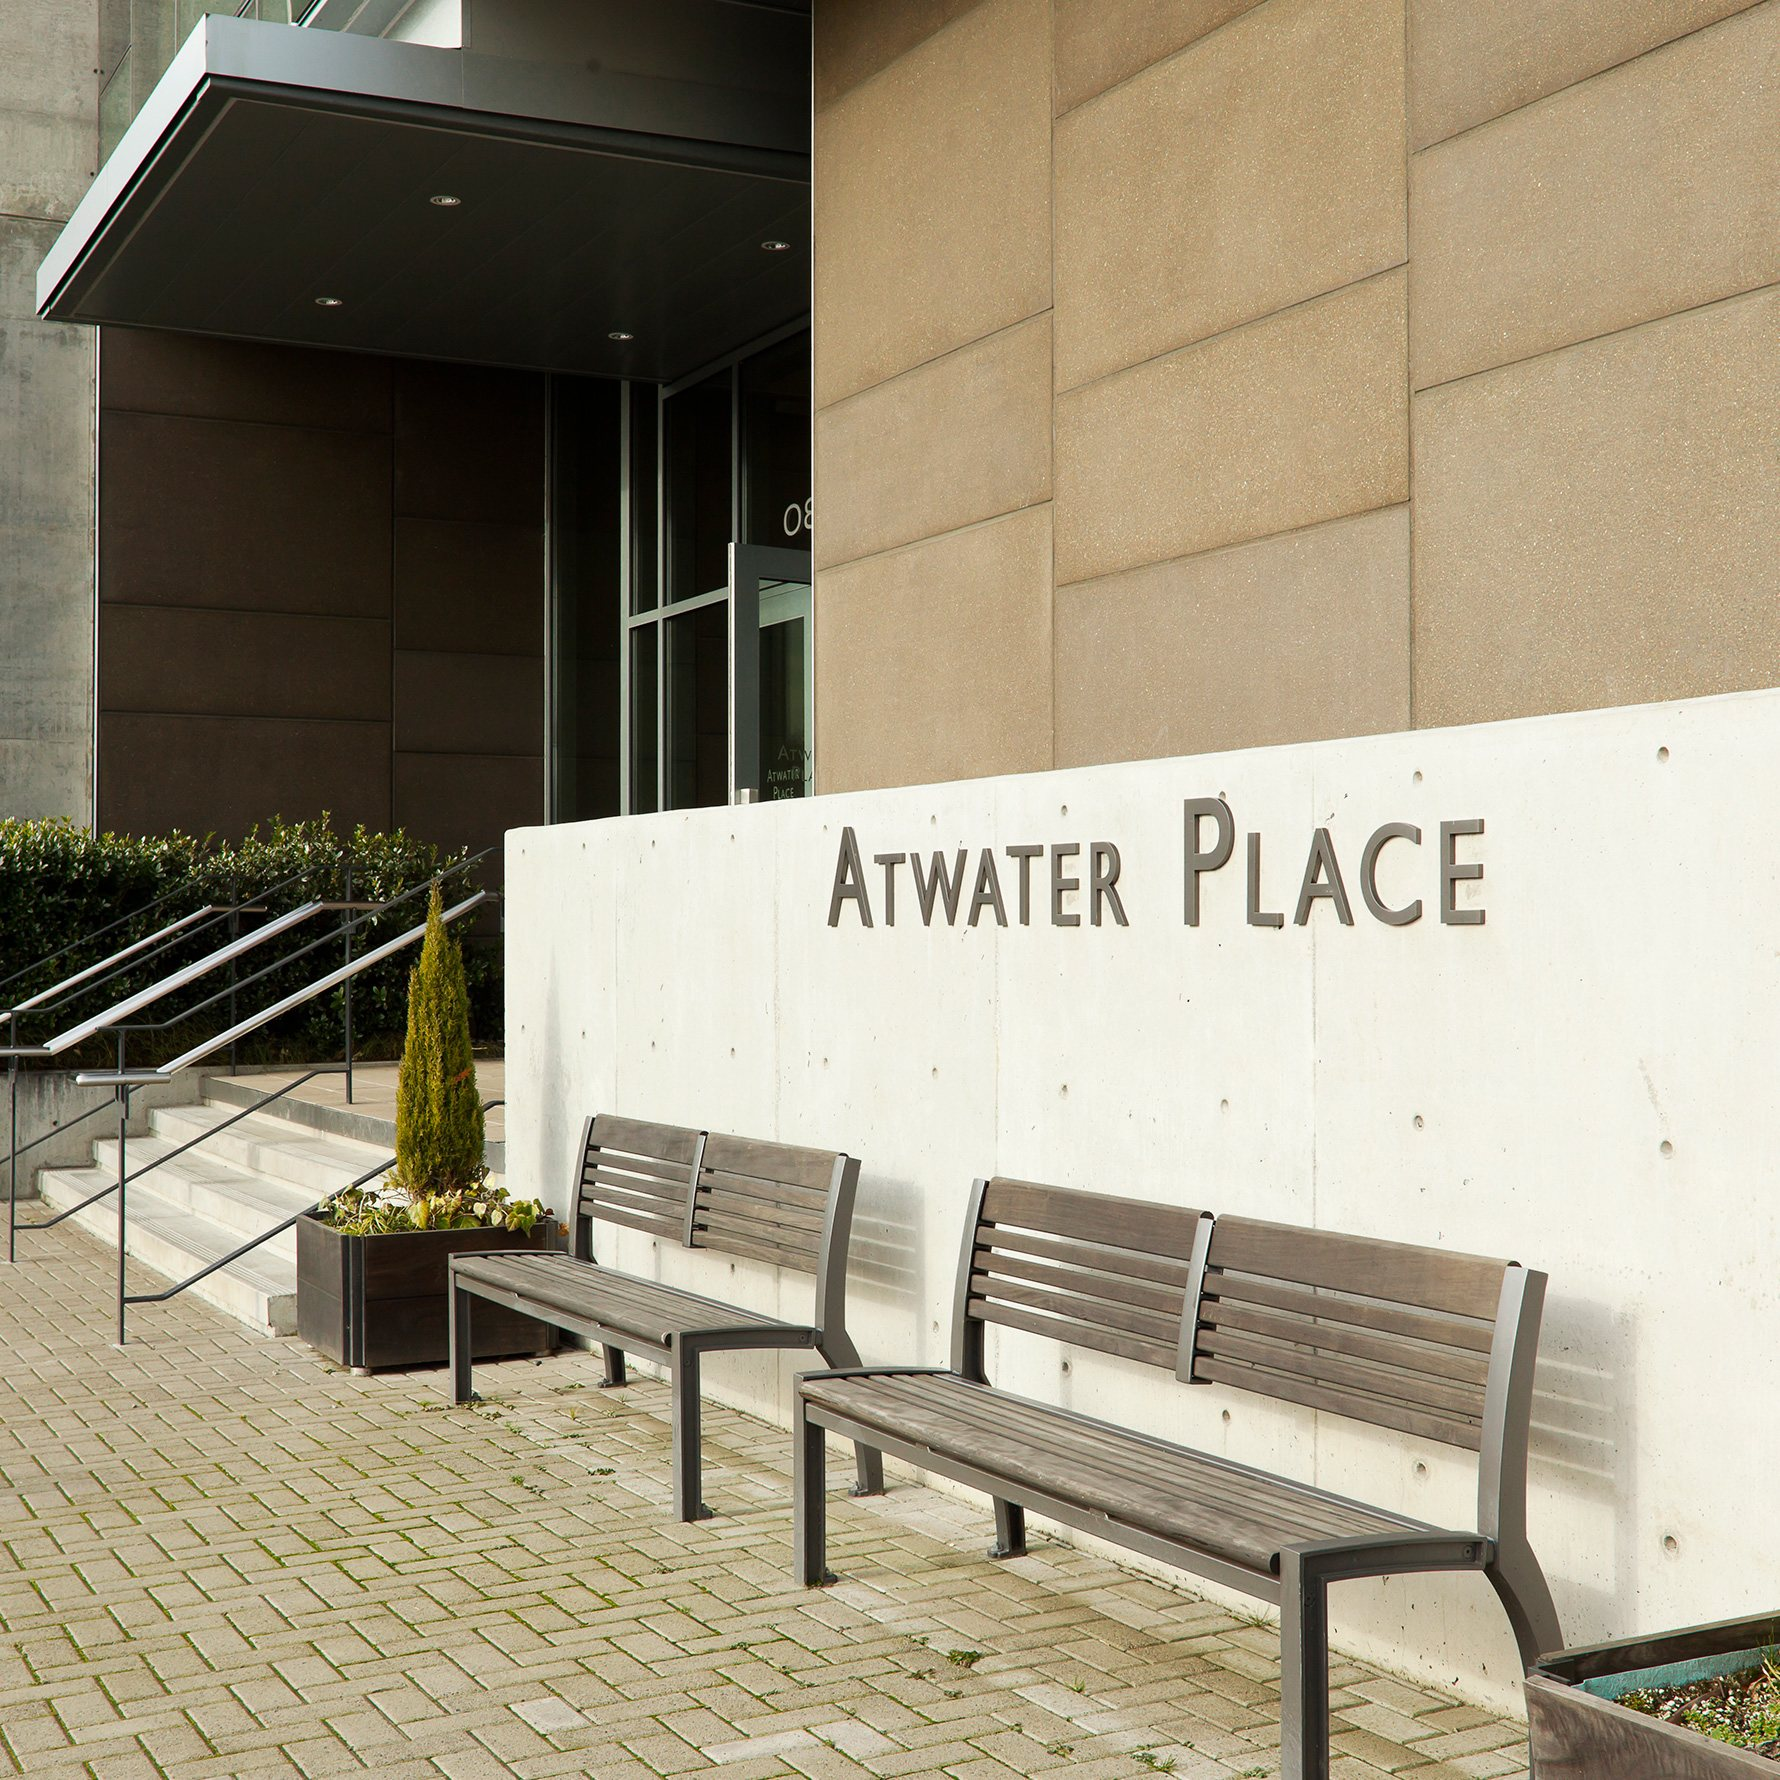 SOUTH WATERFRONT - ATWATER PLACE